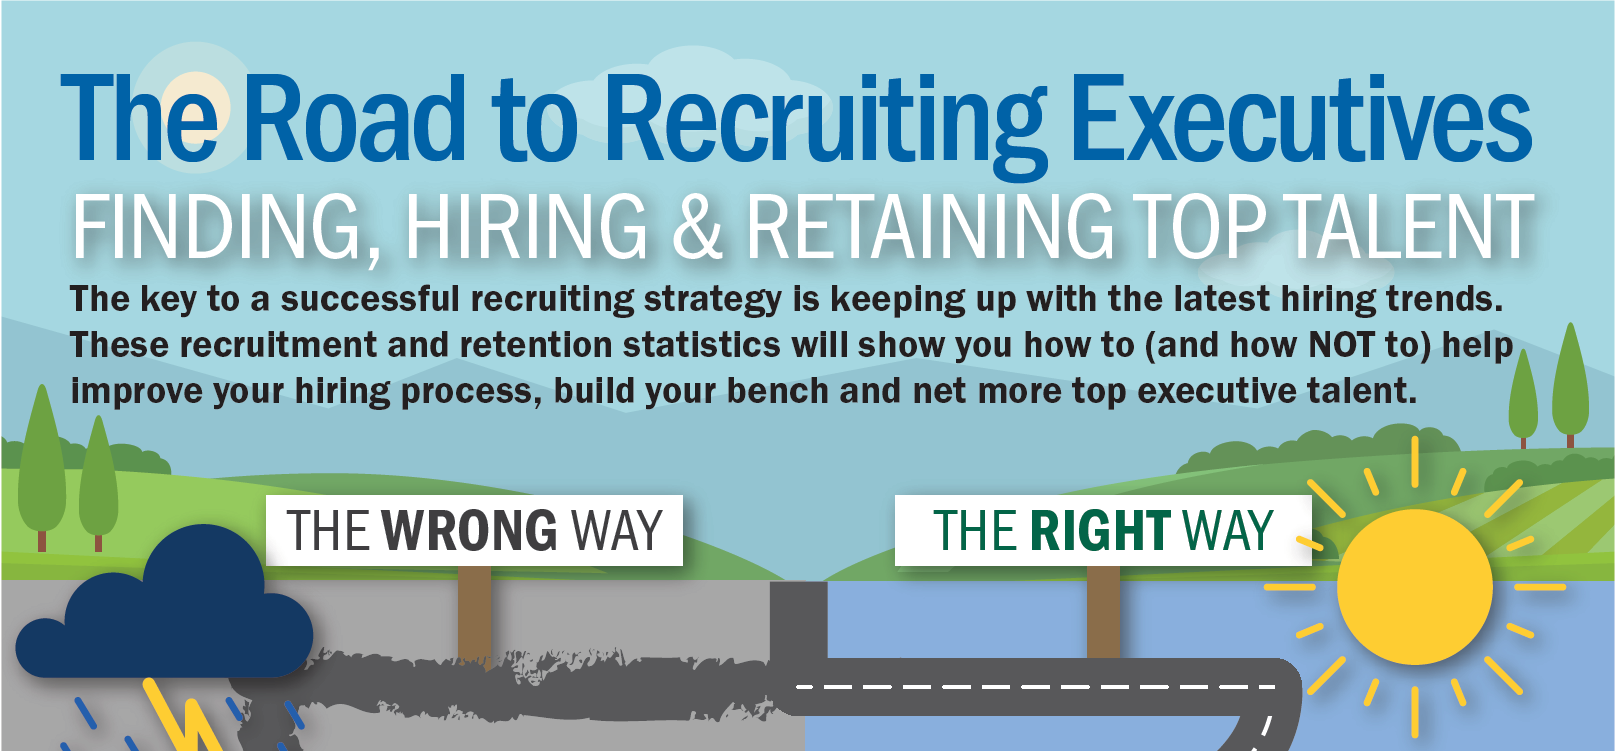 The Road to Recruiting Executives